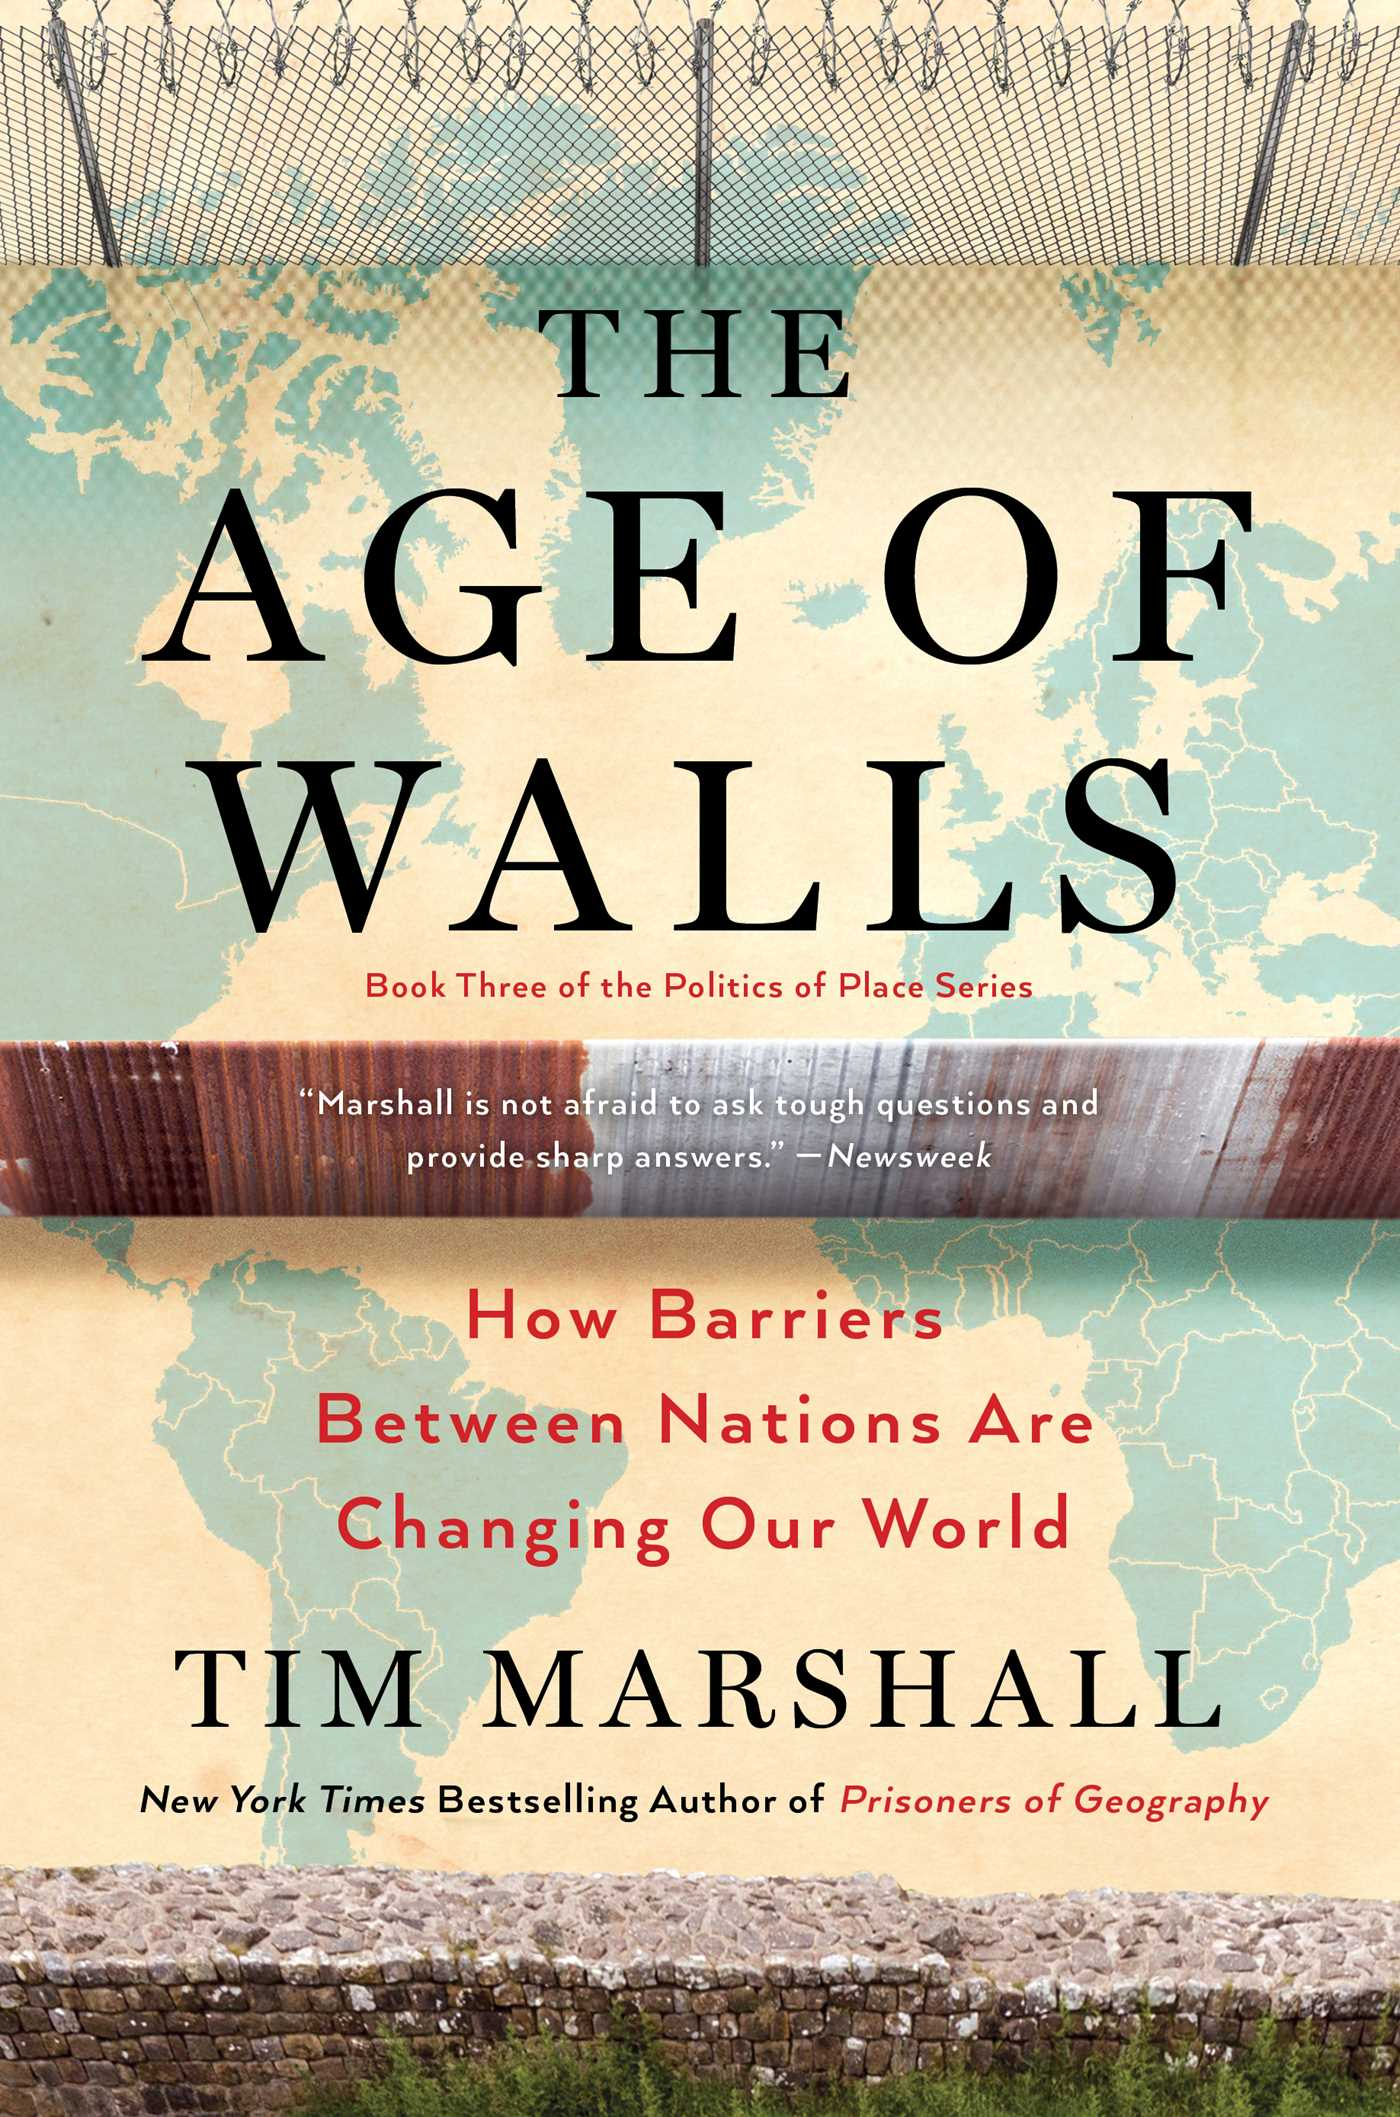 The age of walls 9781501183904 hr